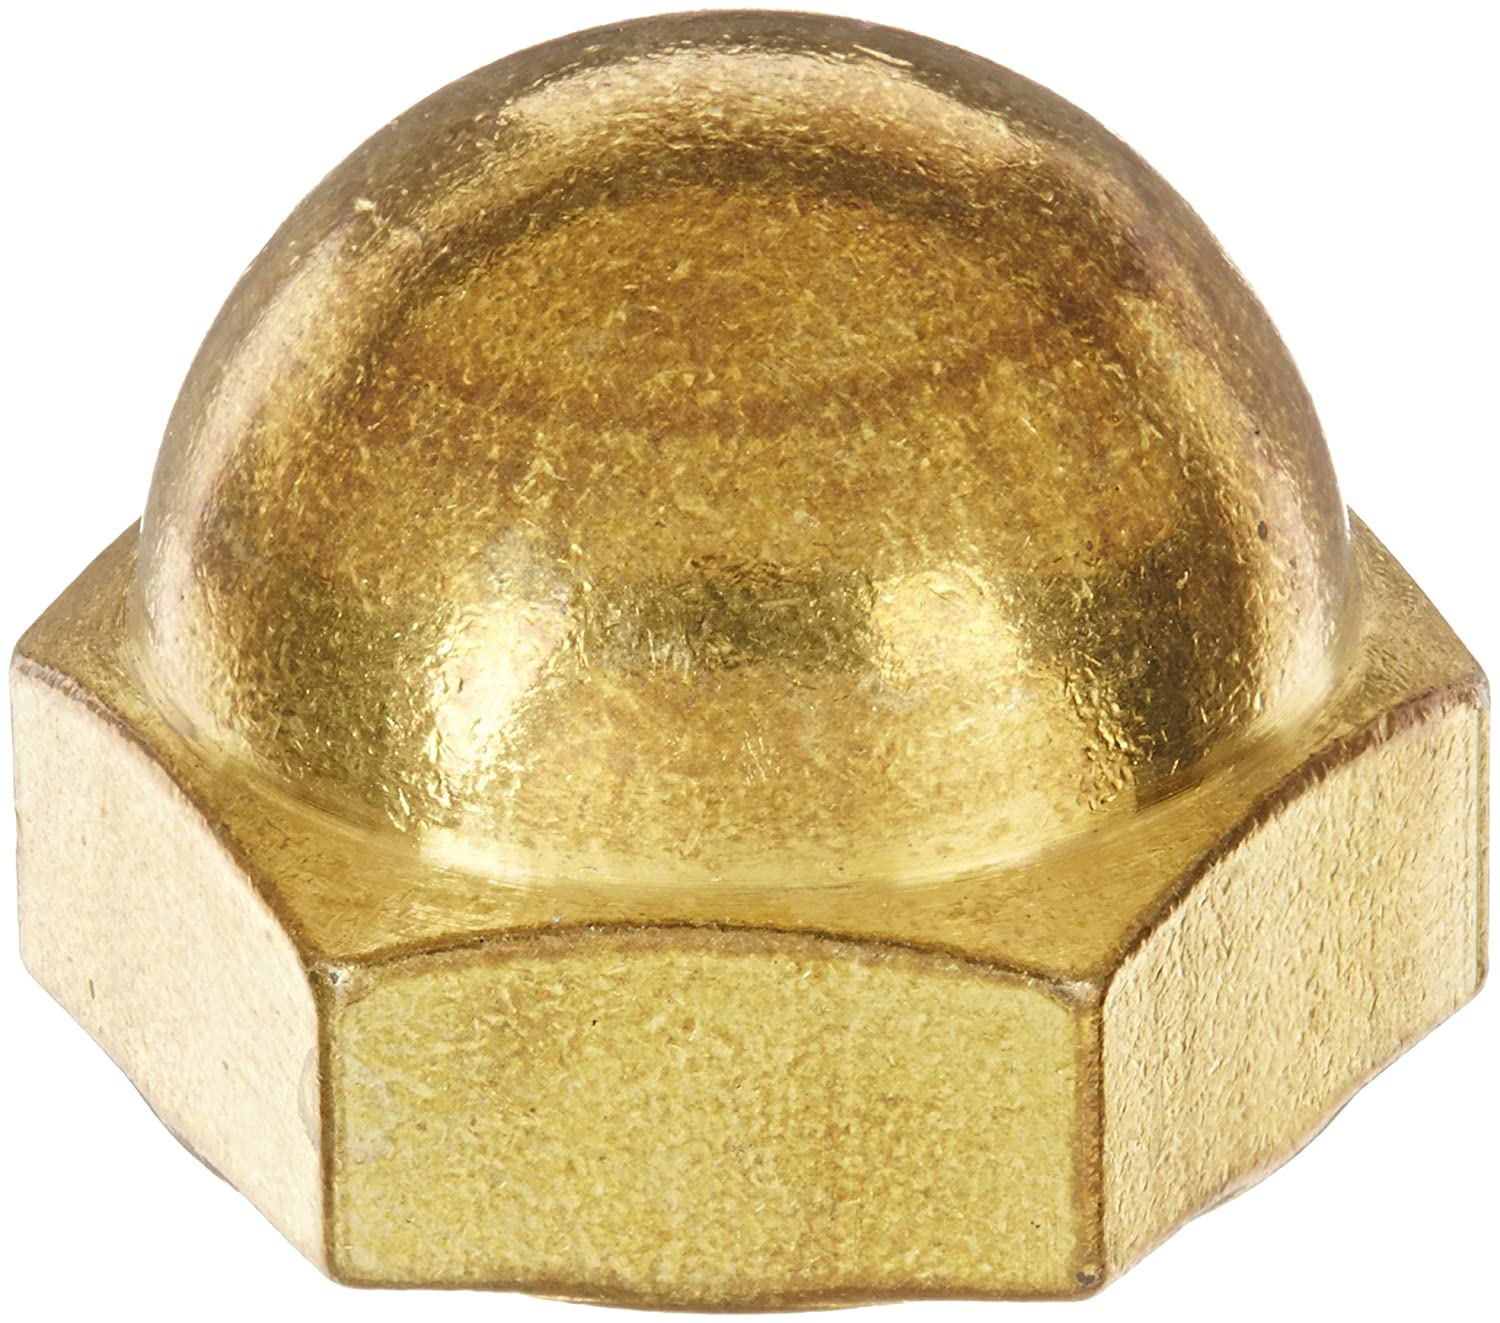 5//8-18 Thread Size 15//16 Width Across Flats 3//4 Height 7//16 Minimum Thread Depth 3//4 Height 5//8-18 Thread Size 15//16 Width Across Flats 7//16 Minimum Thread Depth USA Made Small Parts Brass Acorn Nut Pack of 1 Pack of 1